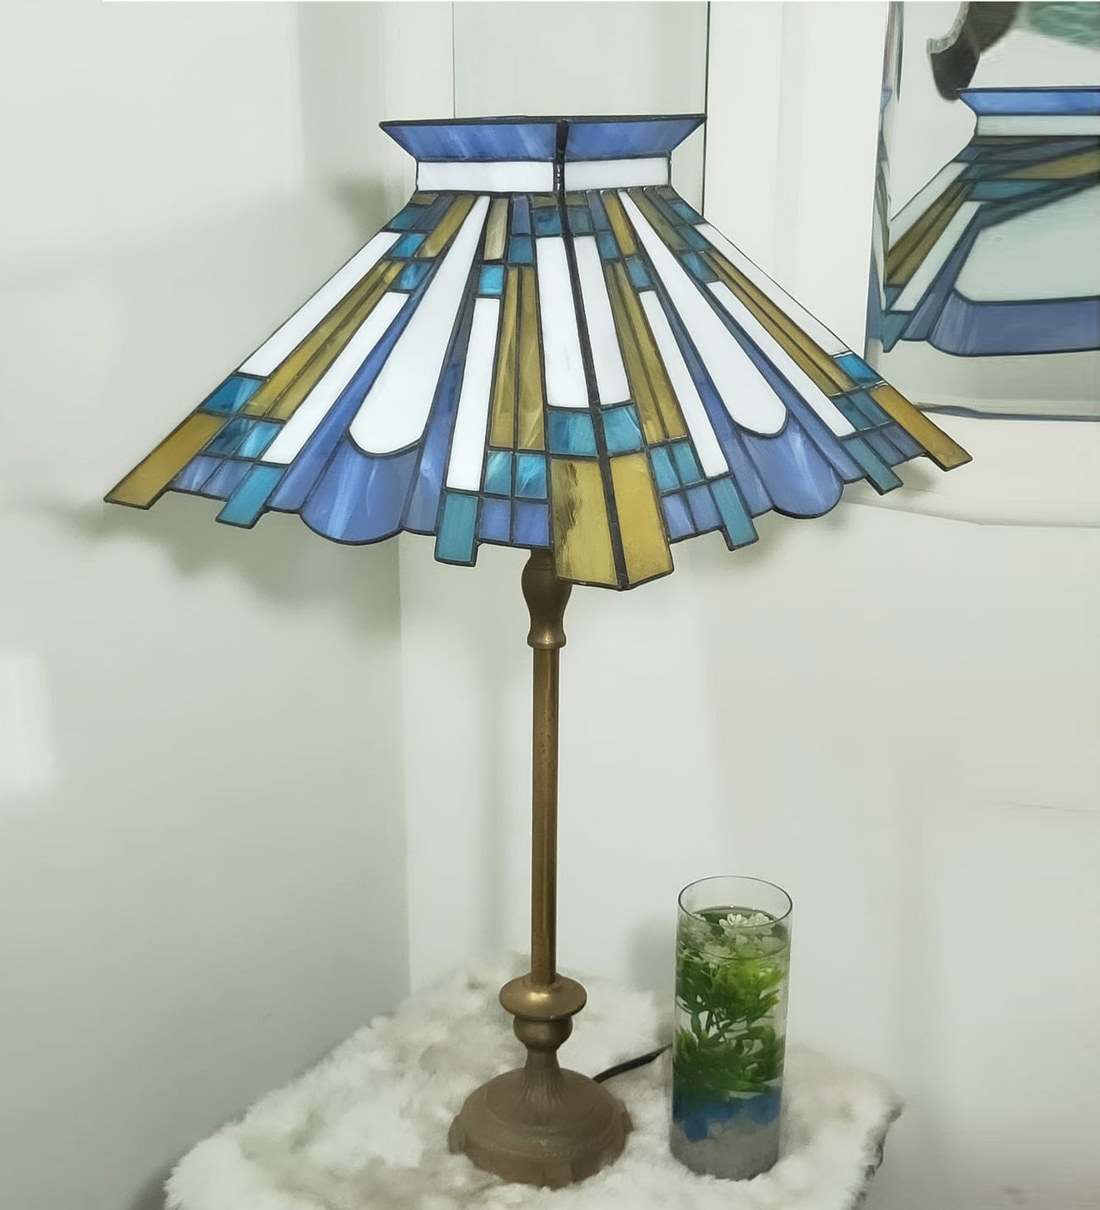 Buy Blue Stained Glass Shade Tiffany Table Lamp With Antique Gold Base By Stg House Online Mid Century Table Lamps Table Lamps Lamps Lighting Pepperfry Product